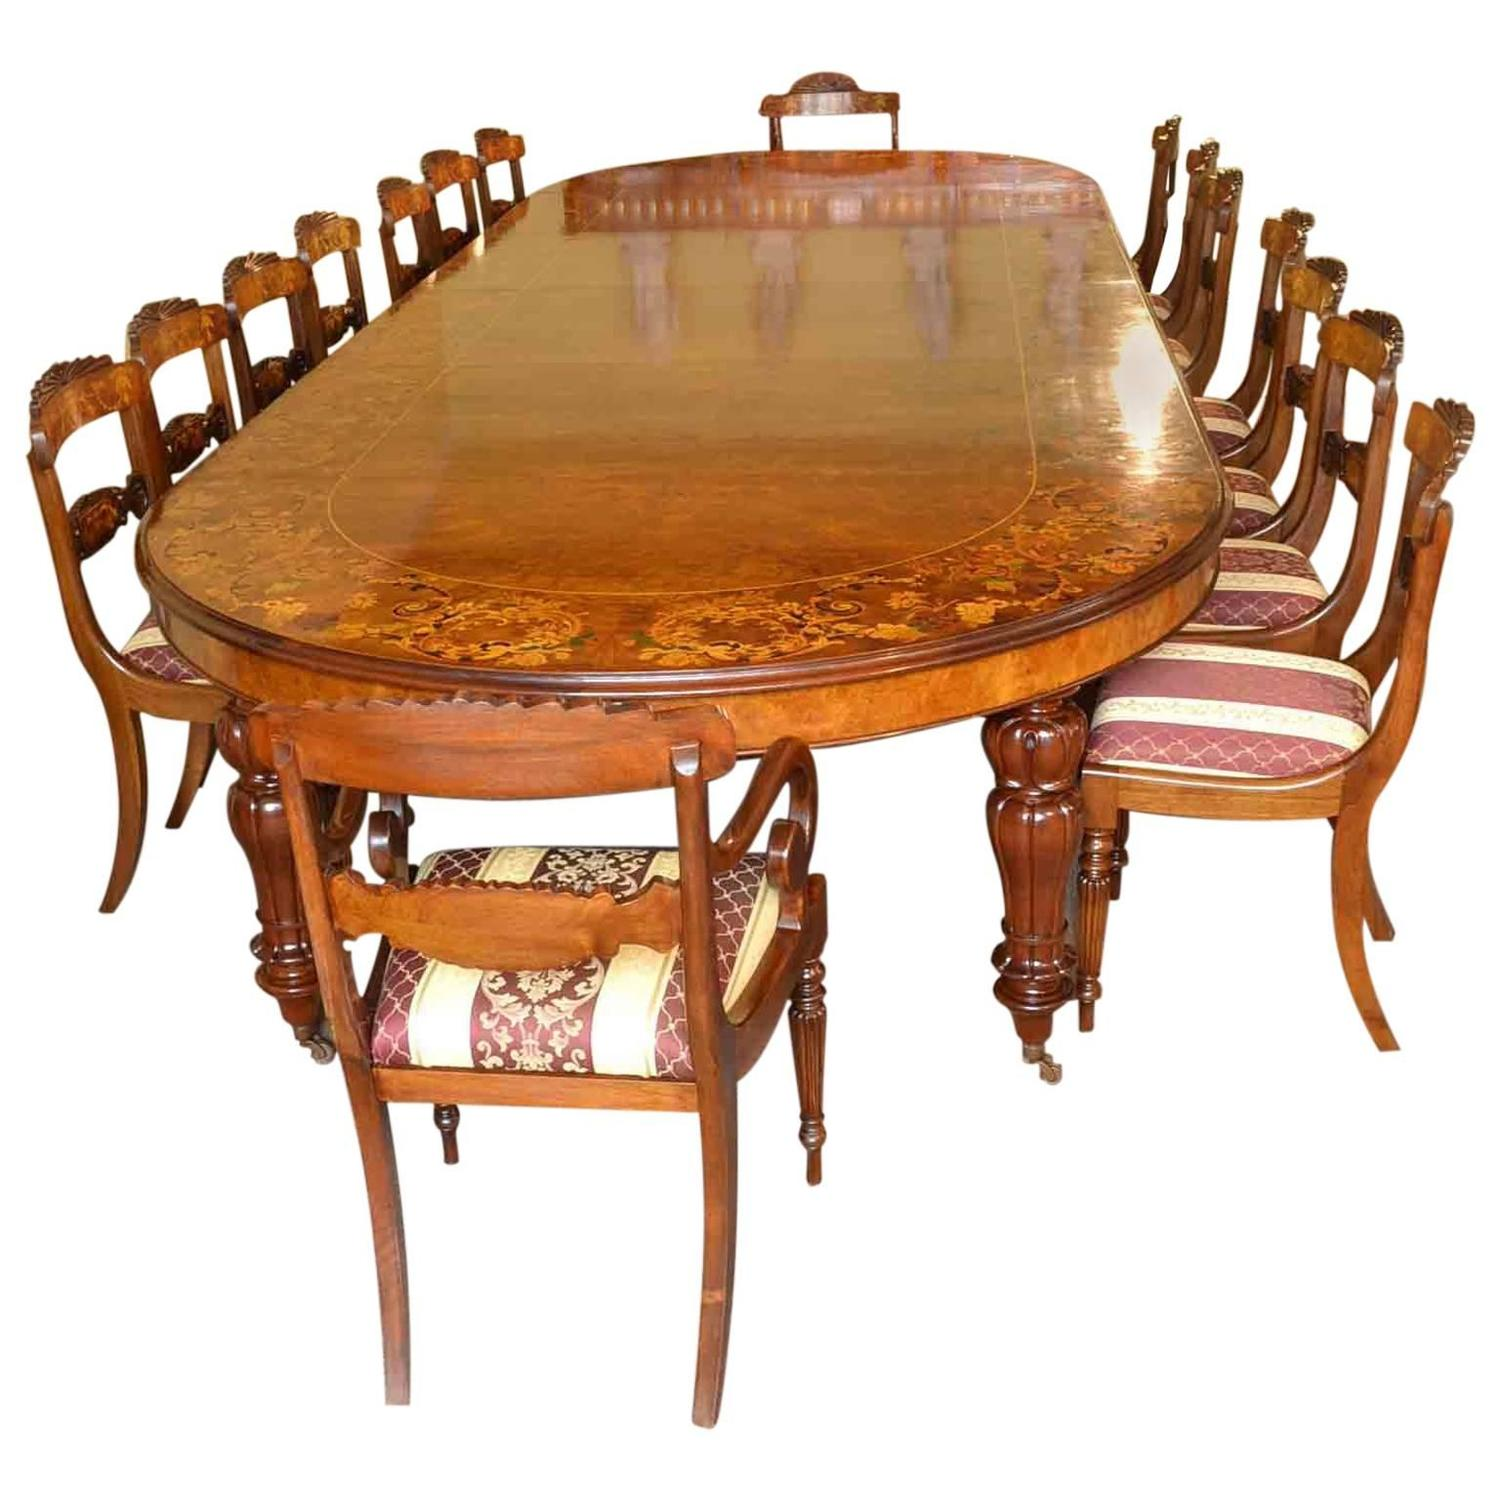 Dining Tables For Sale Cheap: Huge Marquetry Dining Table, 16 Chairs, Extending, Walnut